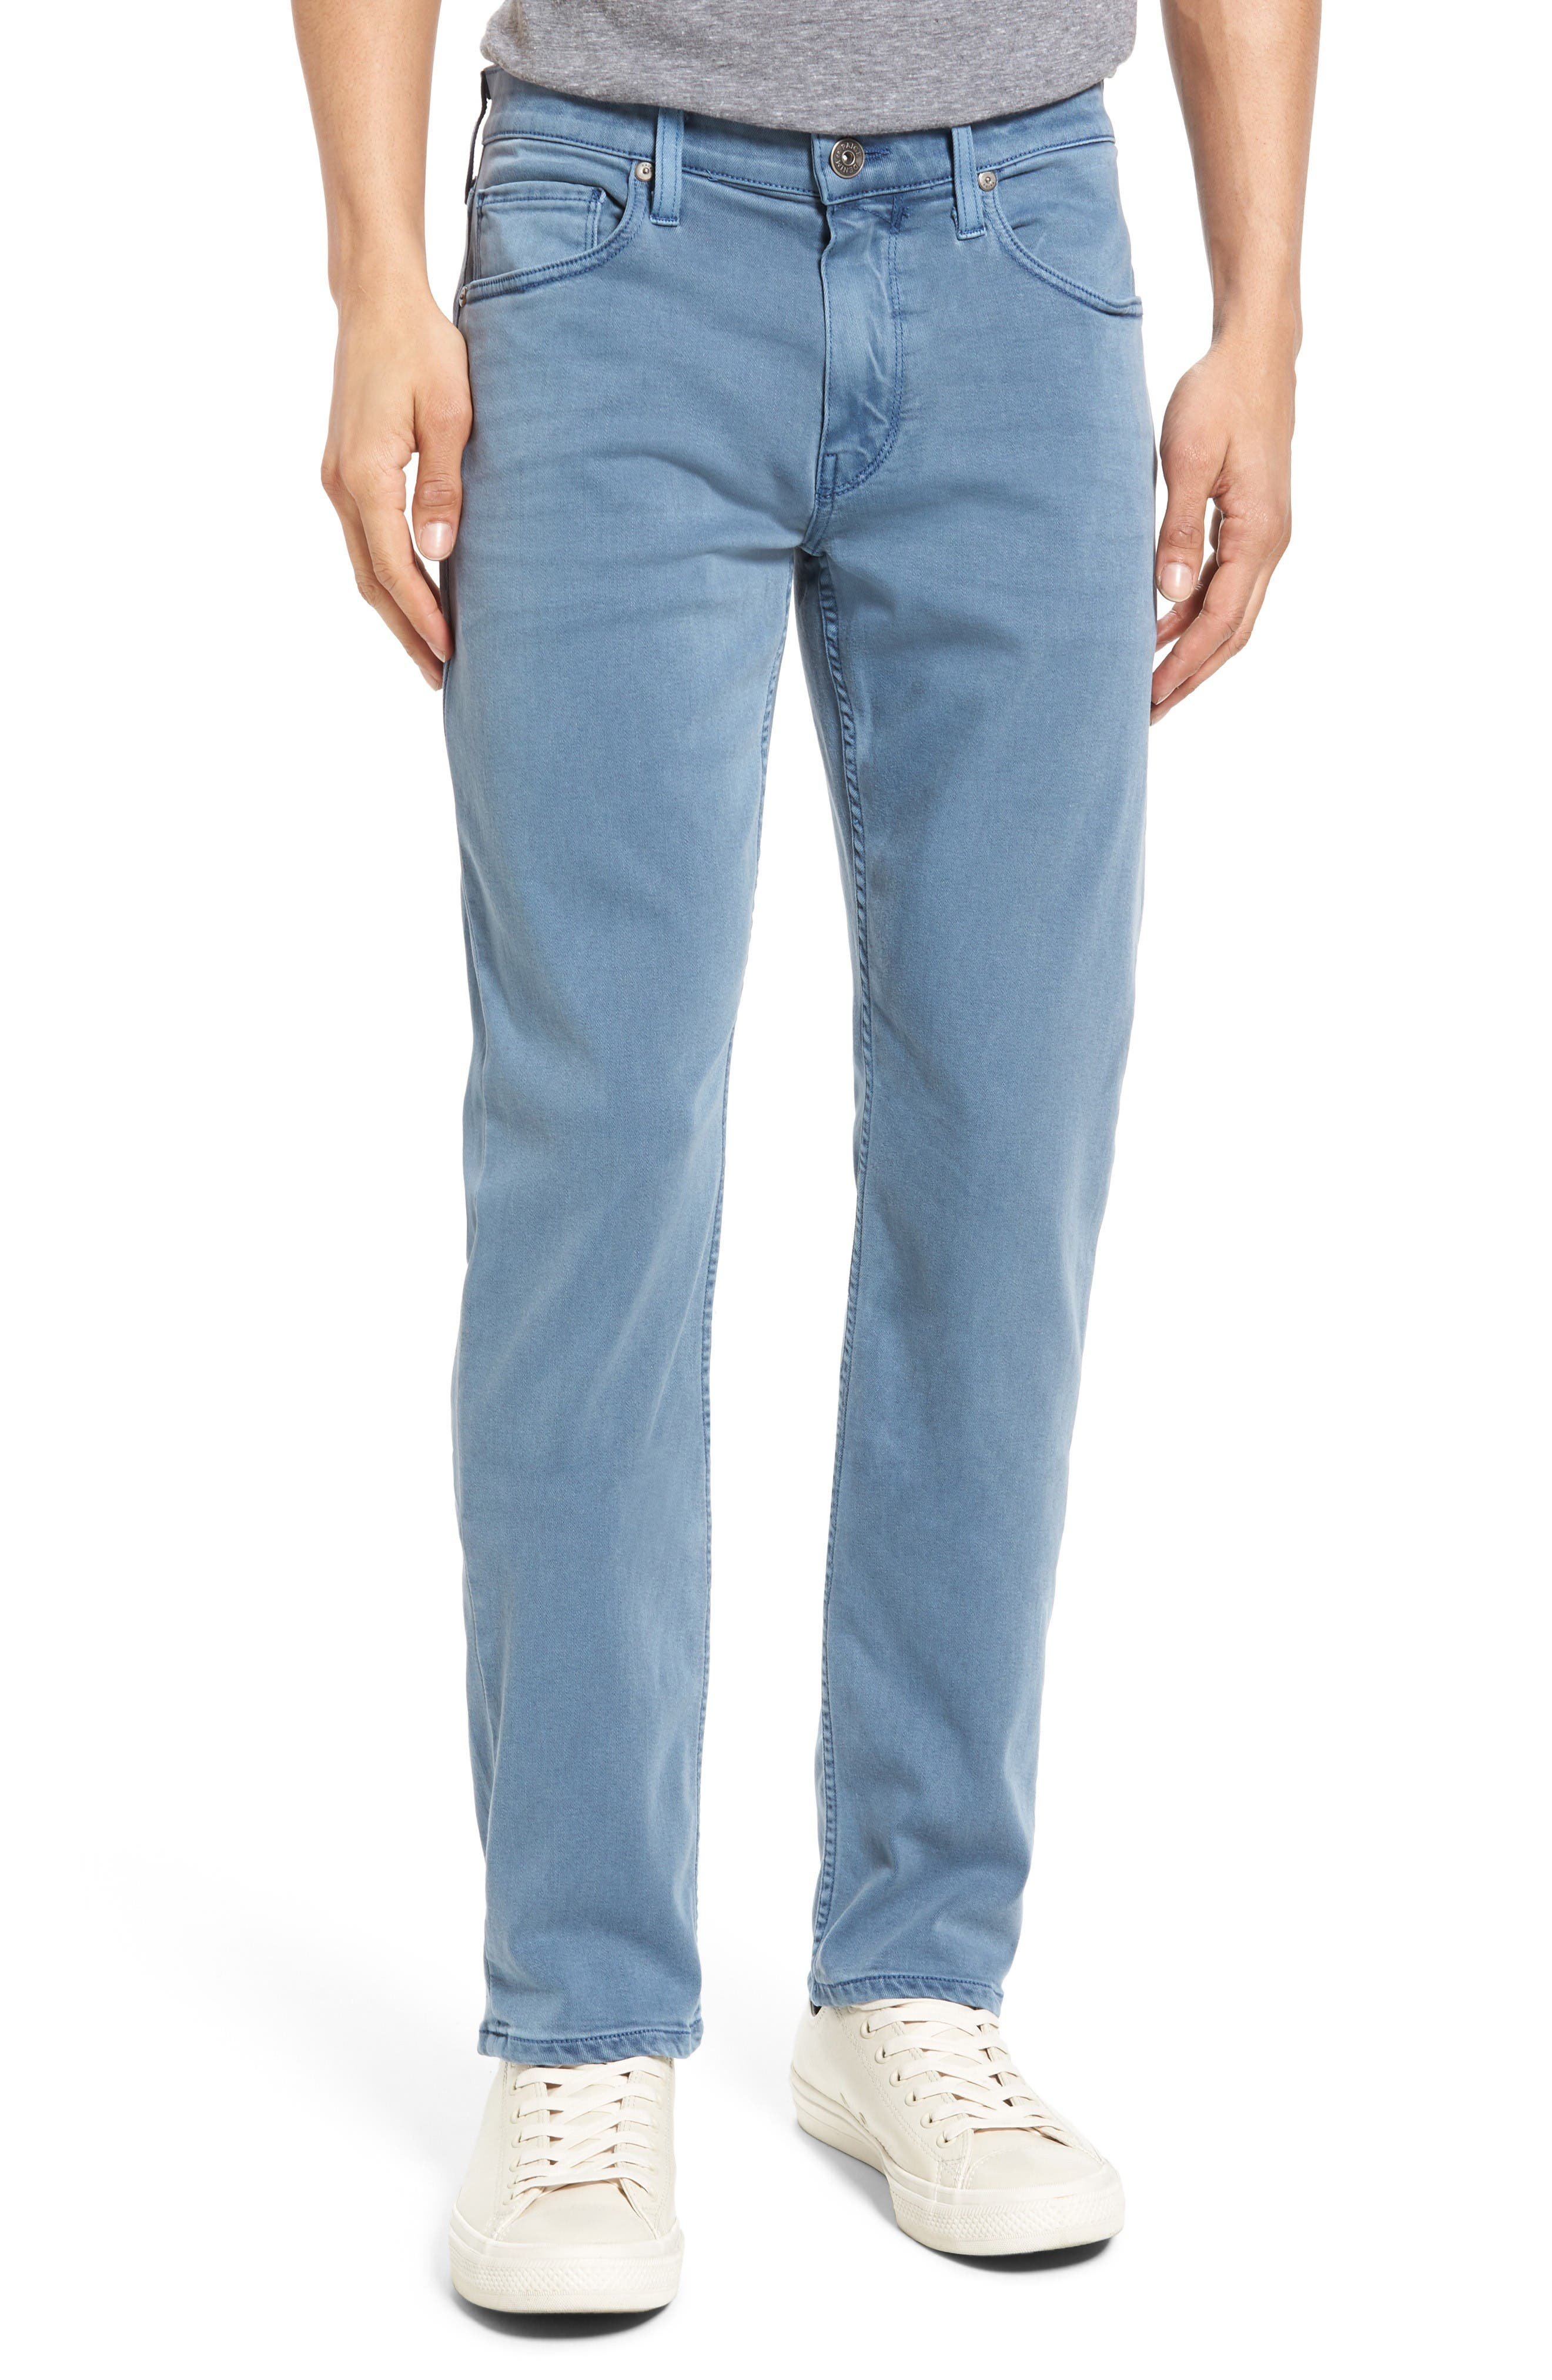 Transcend - Lennox Slim Fit Jeans,                             Main thumbnail 1, color,                             Seascape